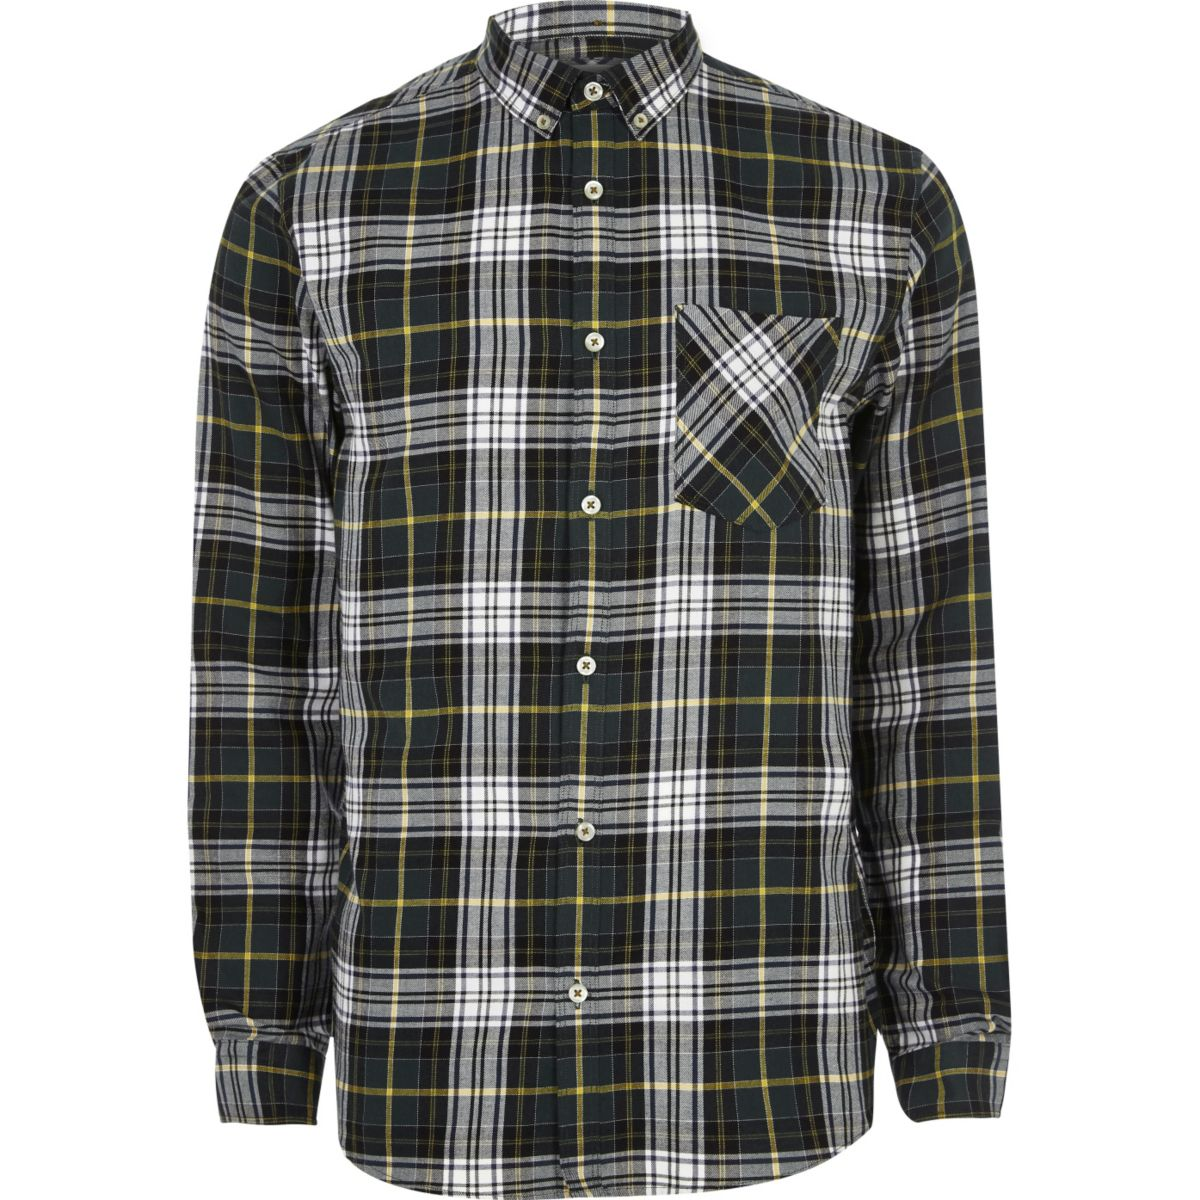 green and white casual check shirt shirts sale men